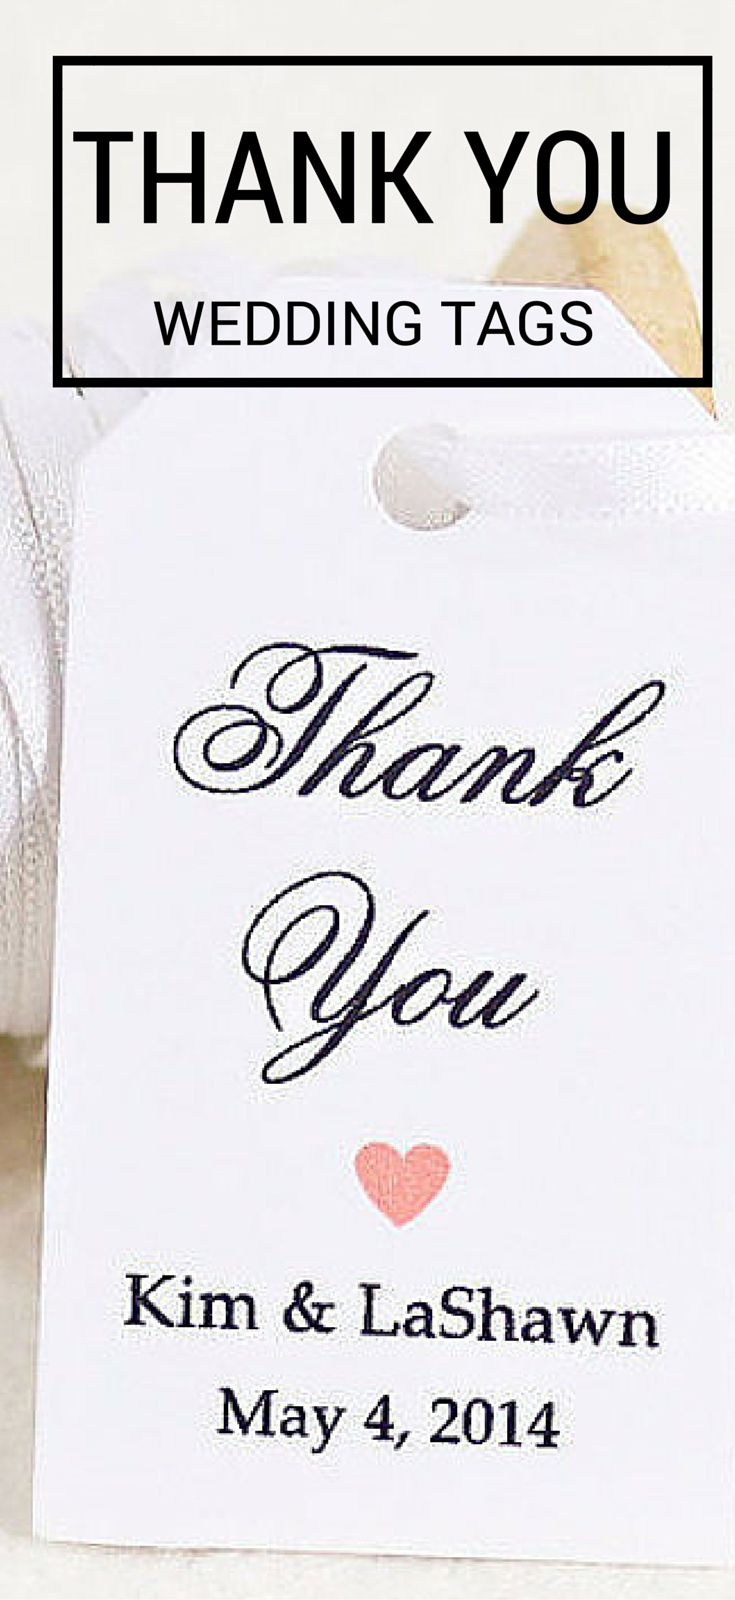 inspired by the love of two people whether it's a wedding or bridal shower, our custom Thank You tag is definitely a sophisticated look you'll want. but one needn't be a a big spender to pull it off: with a simple heart, it's a stylish font, and custom name you can add this to any thank you gift for event for a low cost. Order a set of 25 personalized tags online with I Do Tags at our Etsy shop https://www.etsy.com/shop/iDoTags